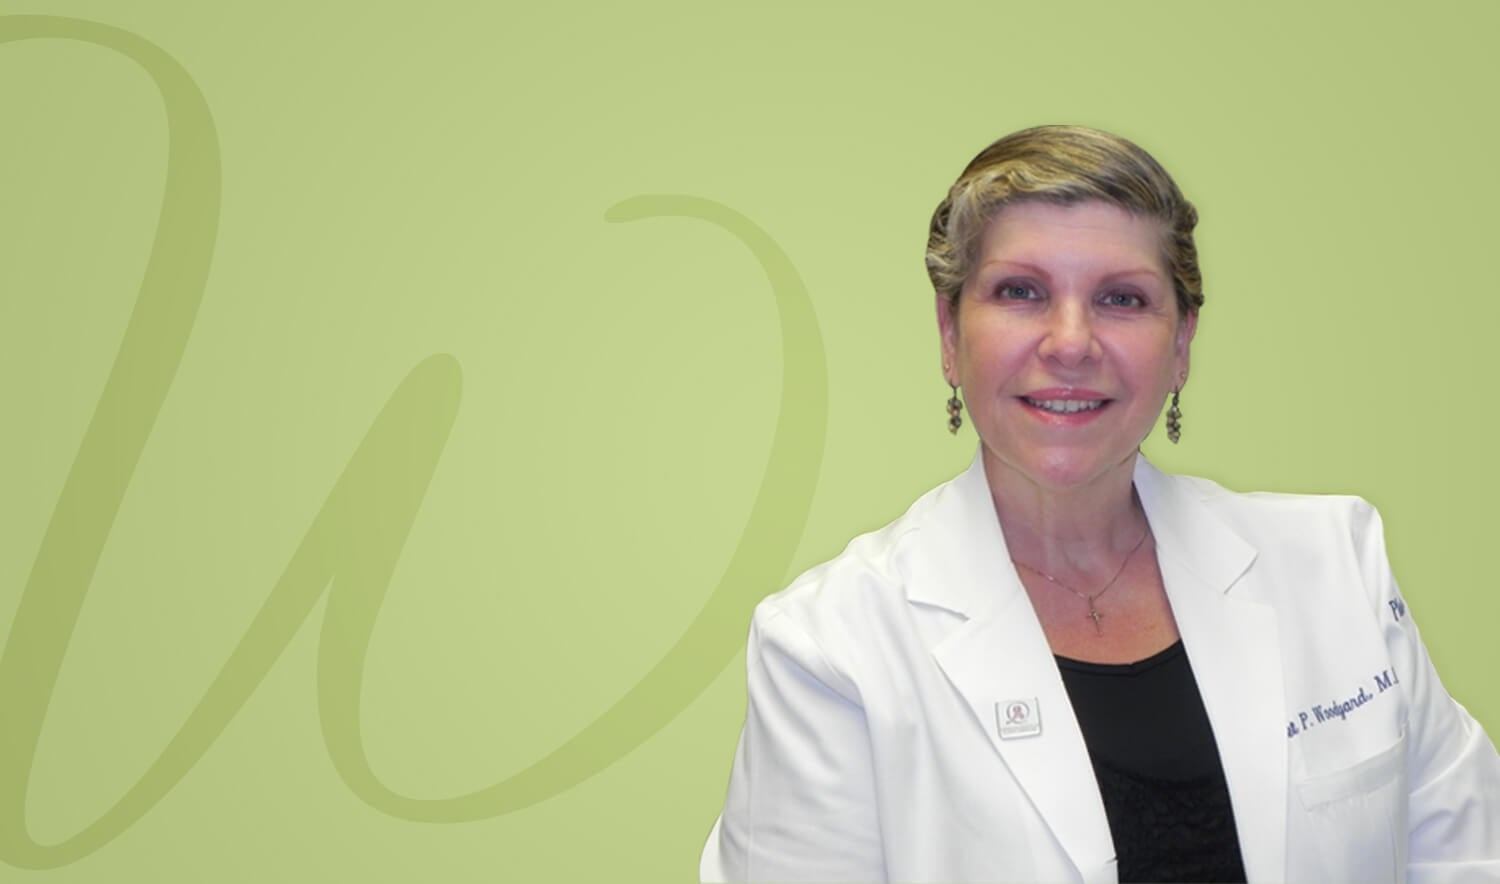 Janet Woodyard, M.D., F.A.C.S. - Enhancing the Appearance of the Face, Breast, Body and Skin